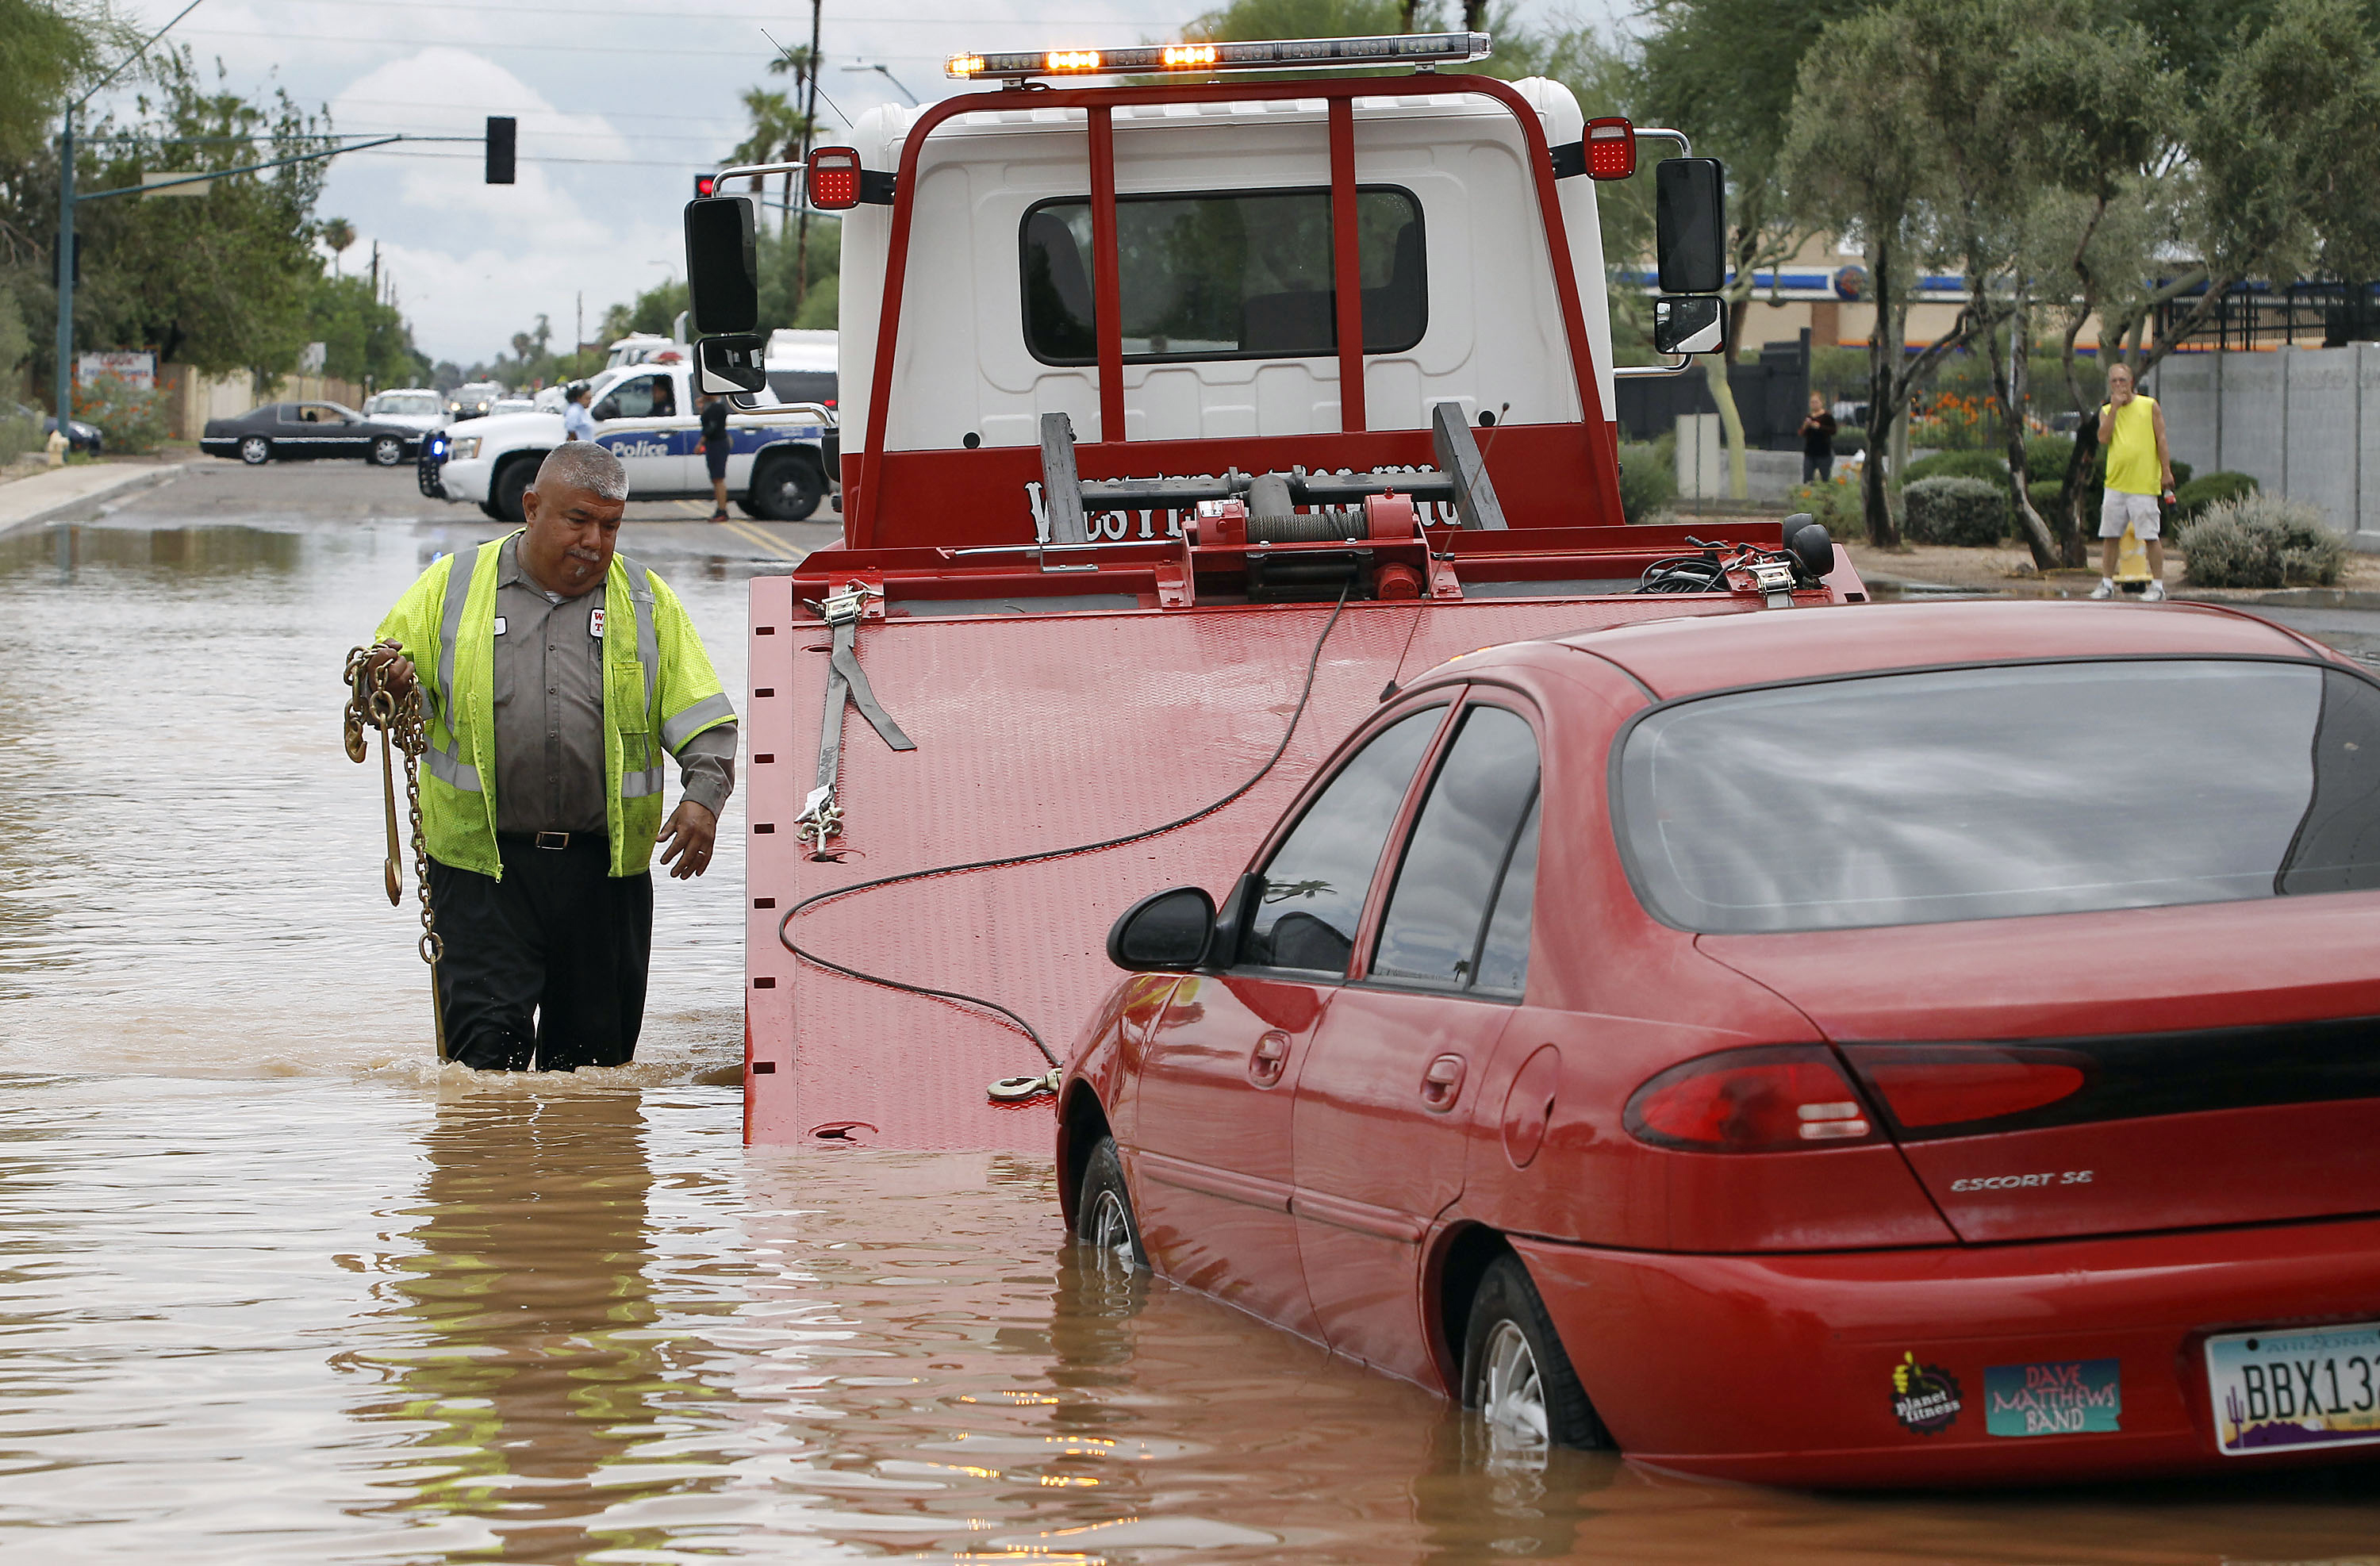 Steven Martinez of Western Towing prepares to lift a vehicle stranded in about 2 ft. of water in Phoenix on Sept. 8, 2014